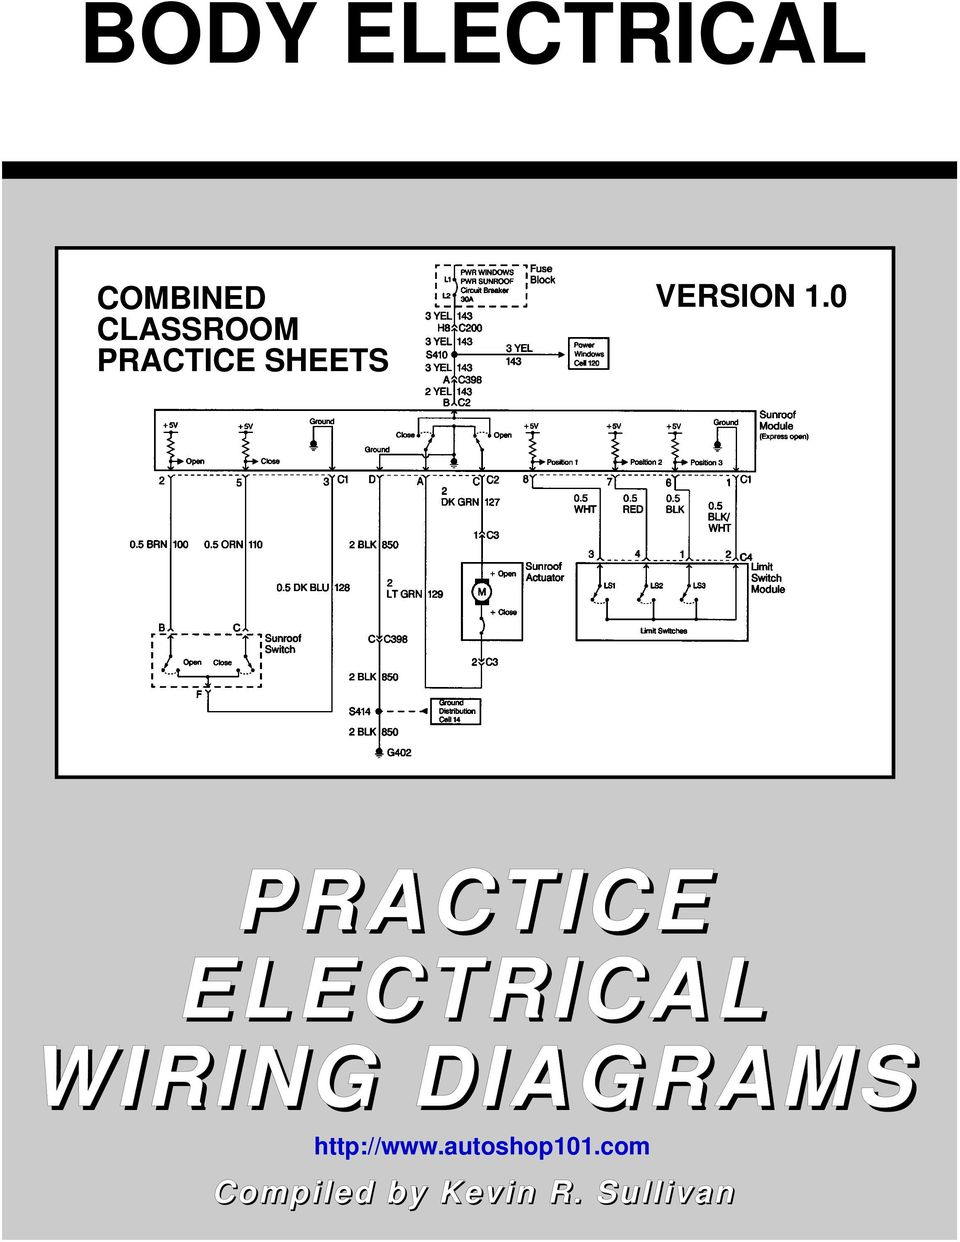 practice electrical wiring diagrams double schematic electrical wiring diagrams